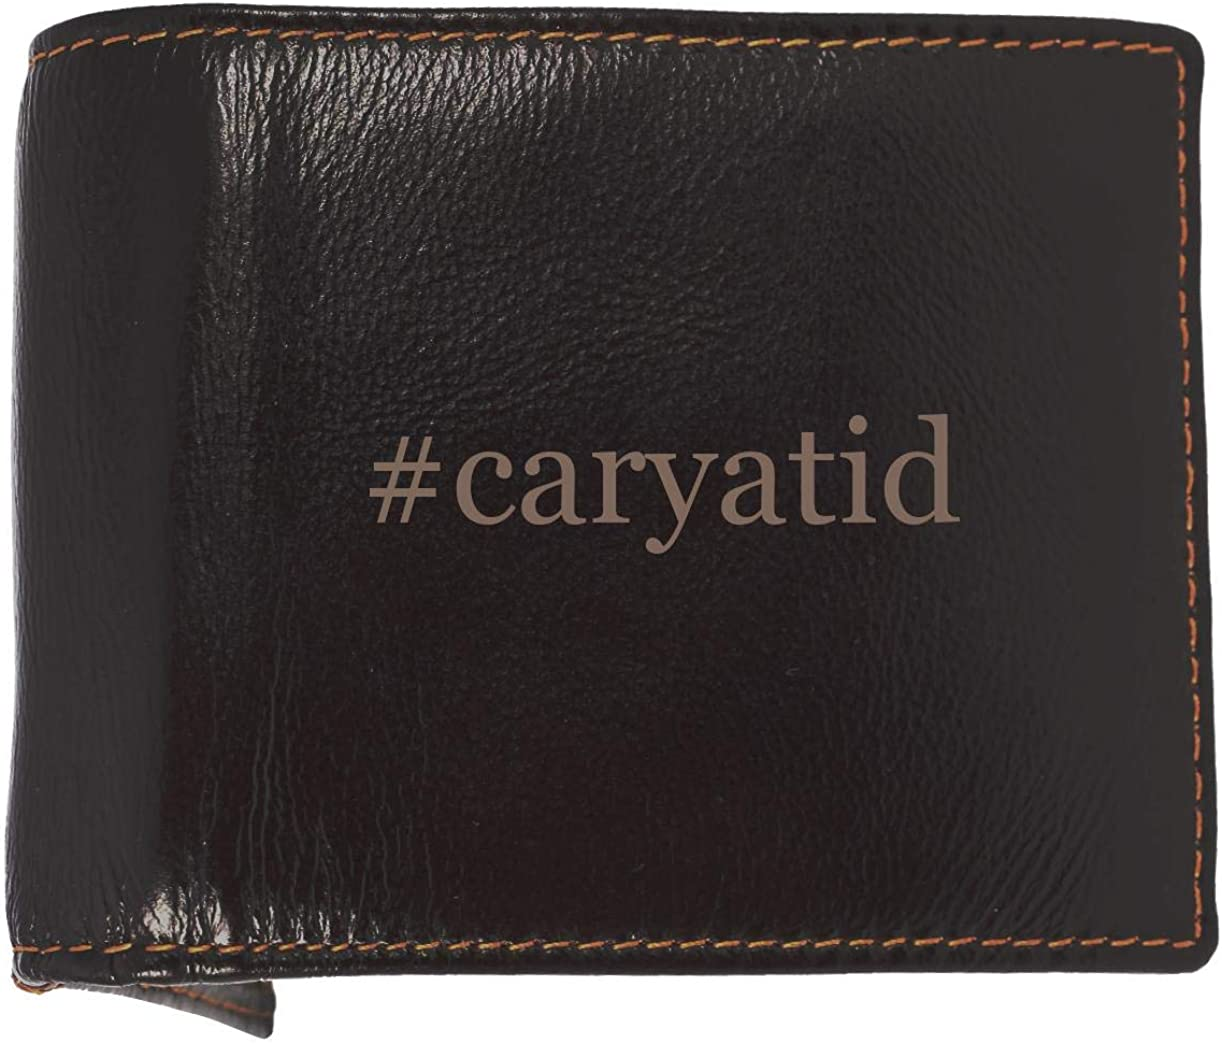 #caryatid - Soft Hashtag Cowhide Genuine Engraved Bifold Leather Wallet 61tQzcoZnbL